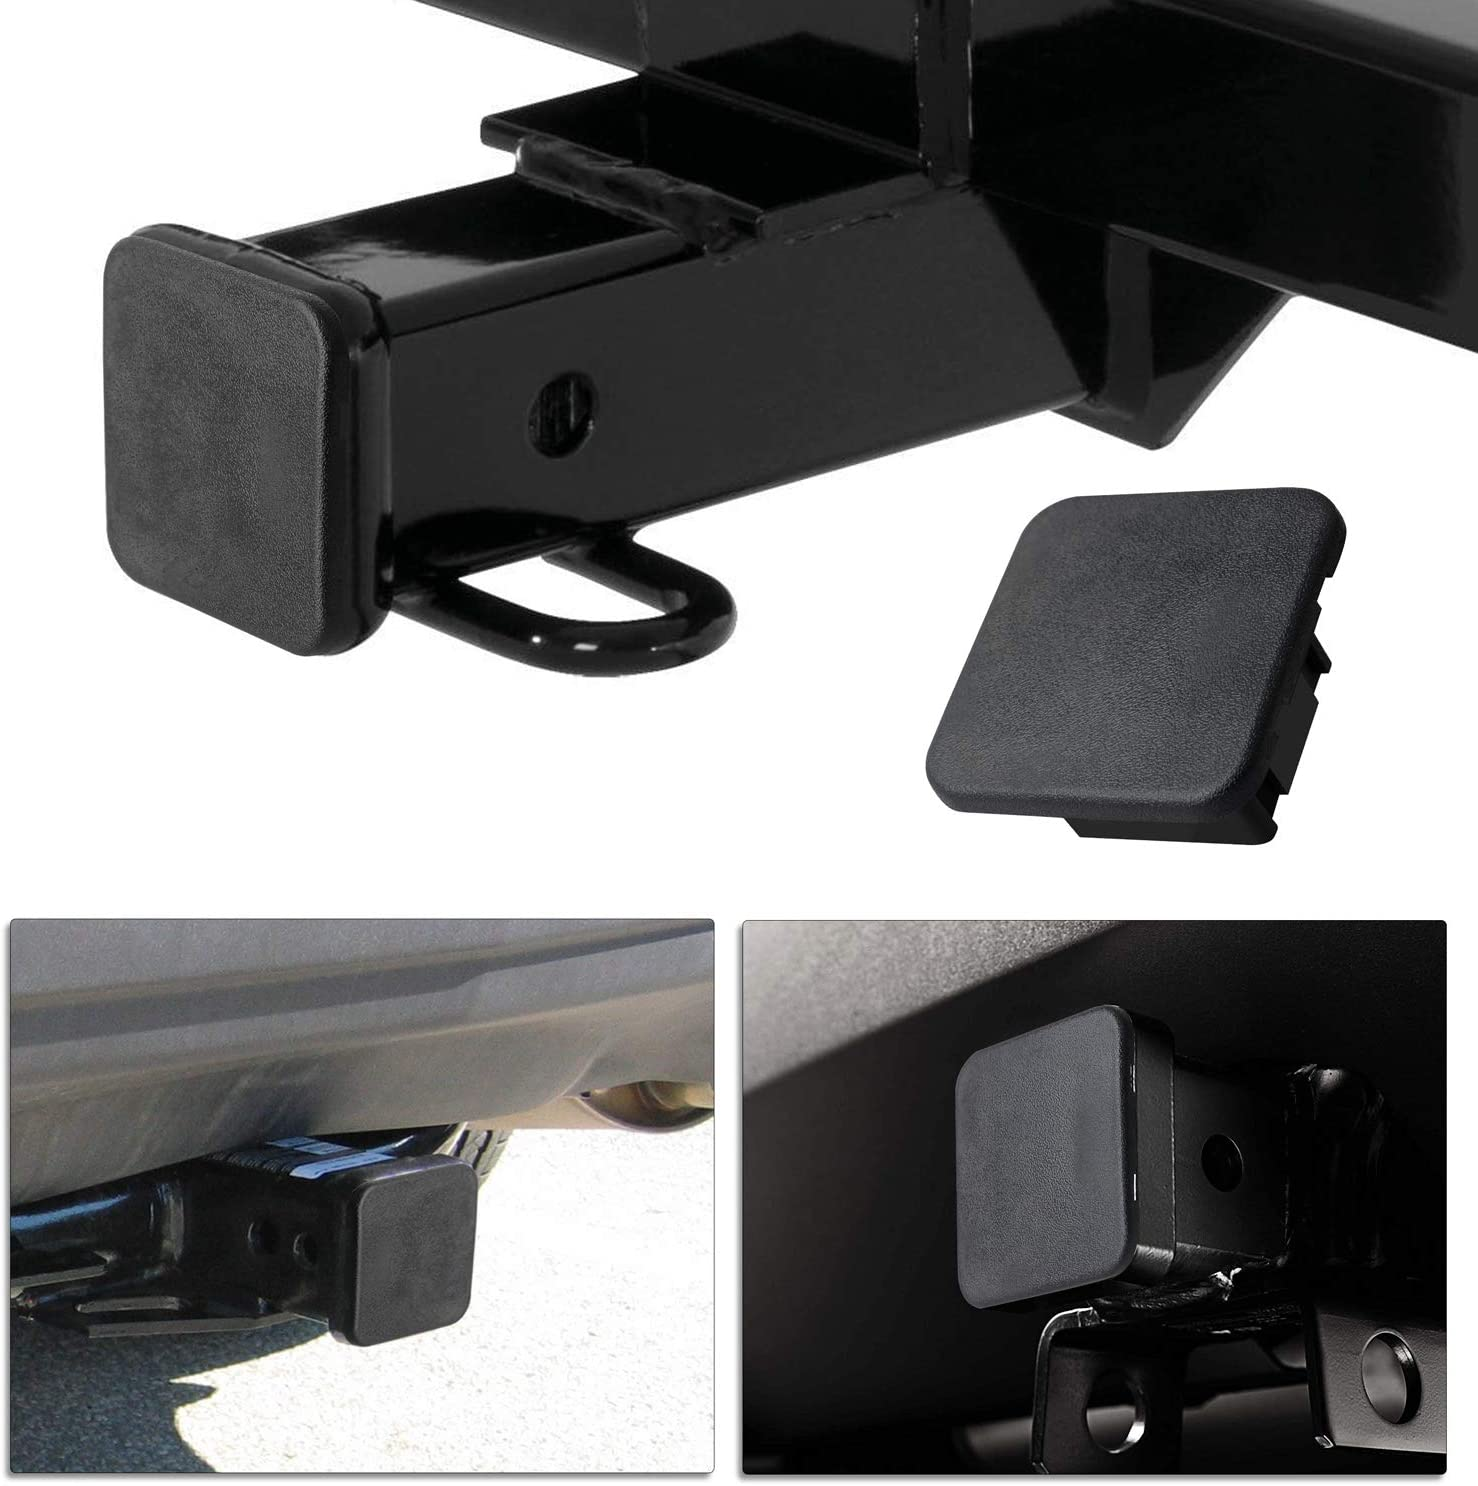 2 Black Hitch Ball Insert Compatible for Toyota Mercedes Mopar Audi F150 Ford GMC Truck Chevy Jeep Lexus 4runner CZC AUTO Trailer Hitch Cover 2 inch Tow Receiver Tube Plug Cap 2X2 1Pack, Black